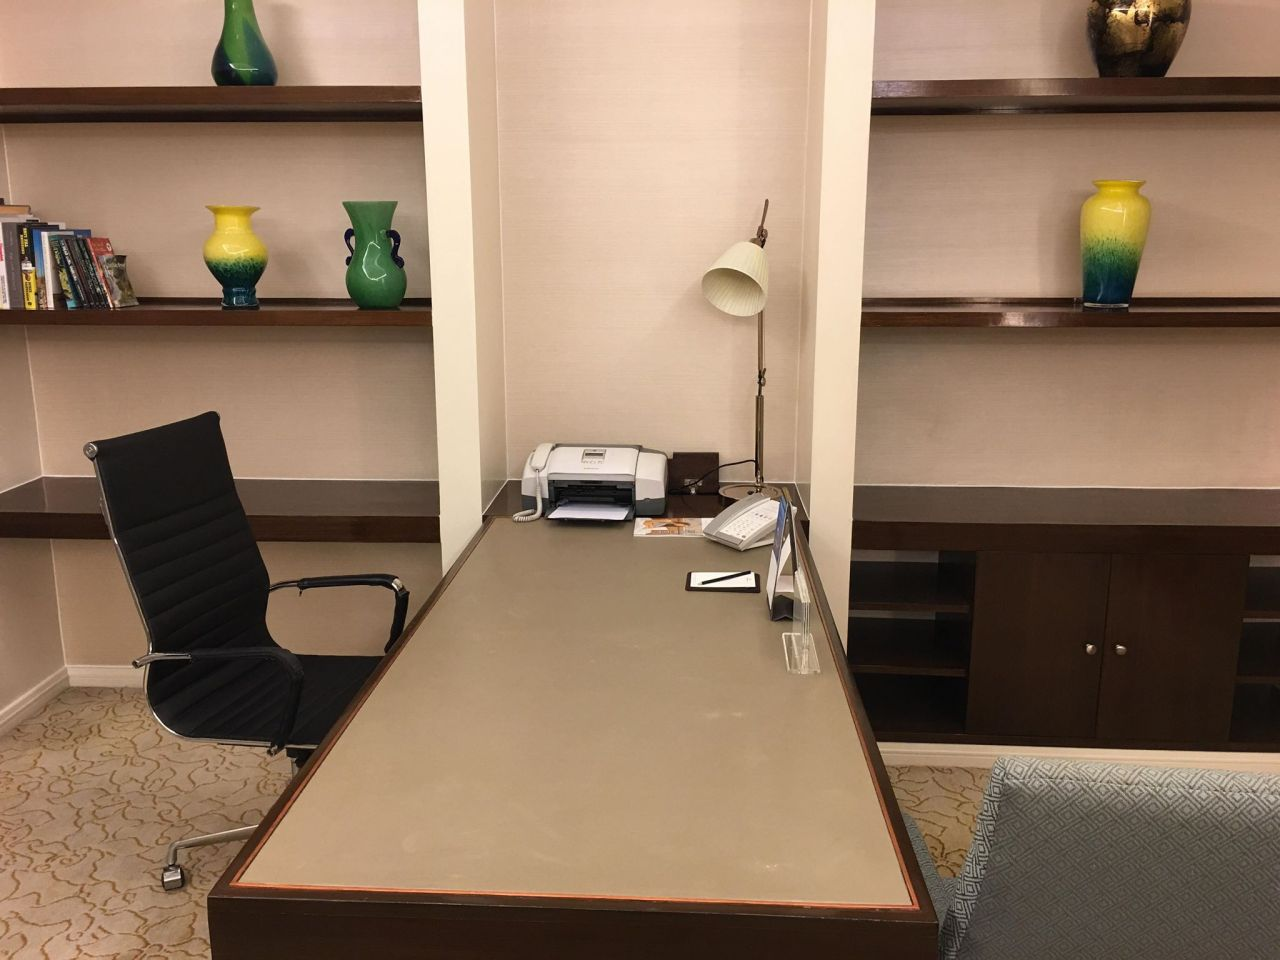 The executive office space at the EDSA Suite